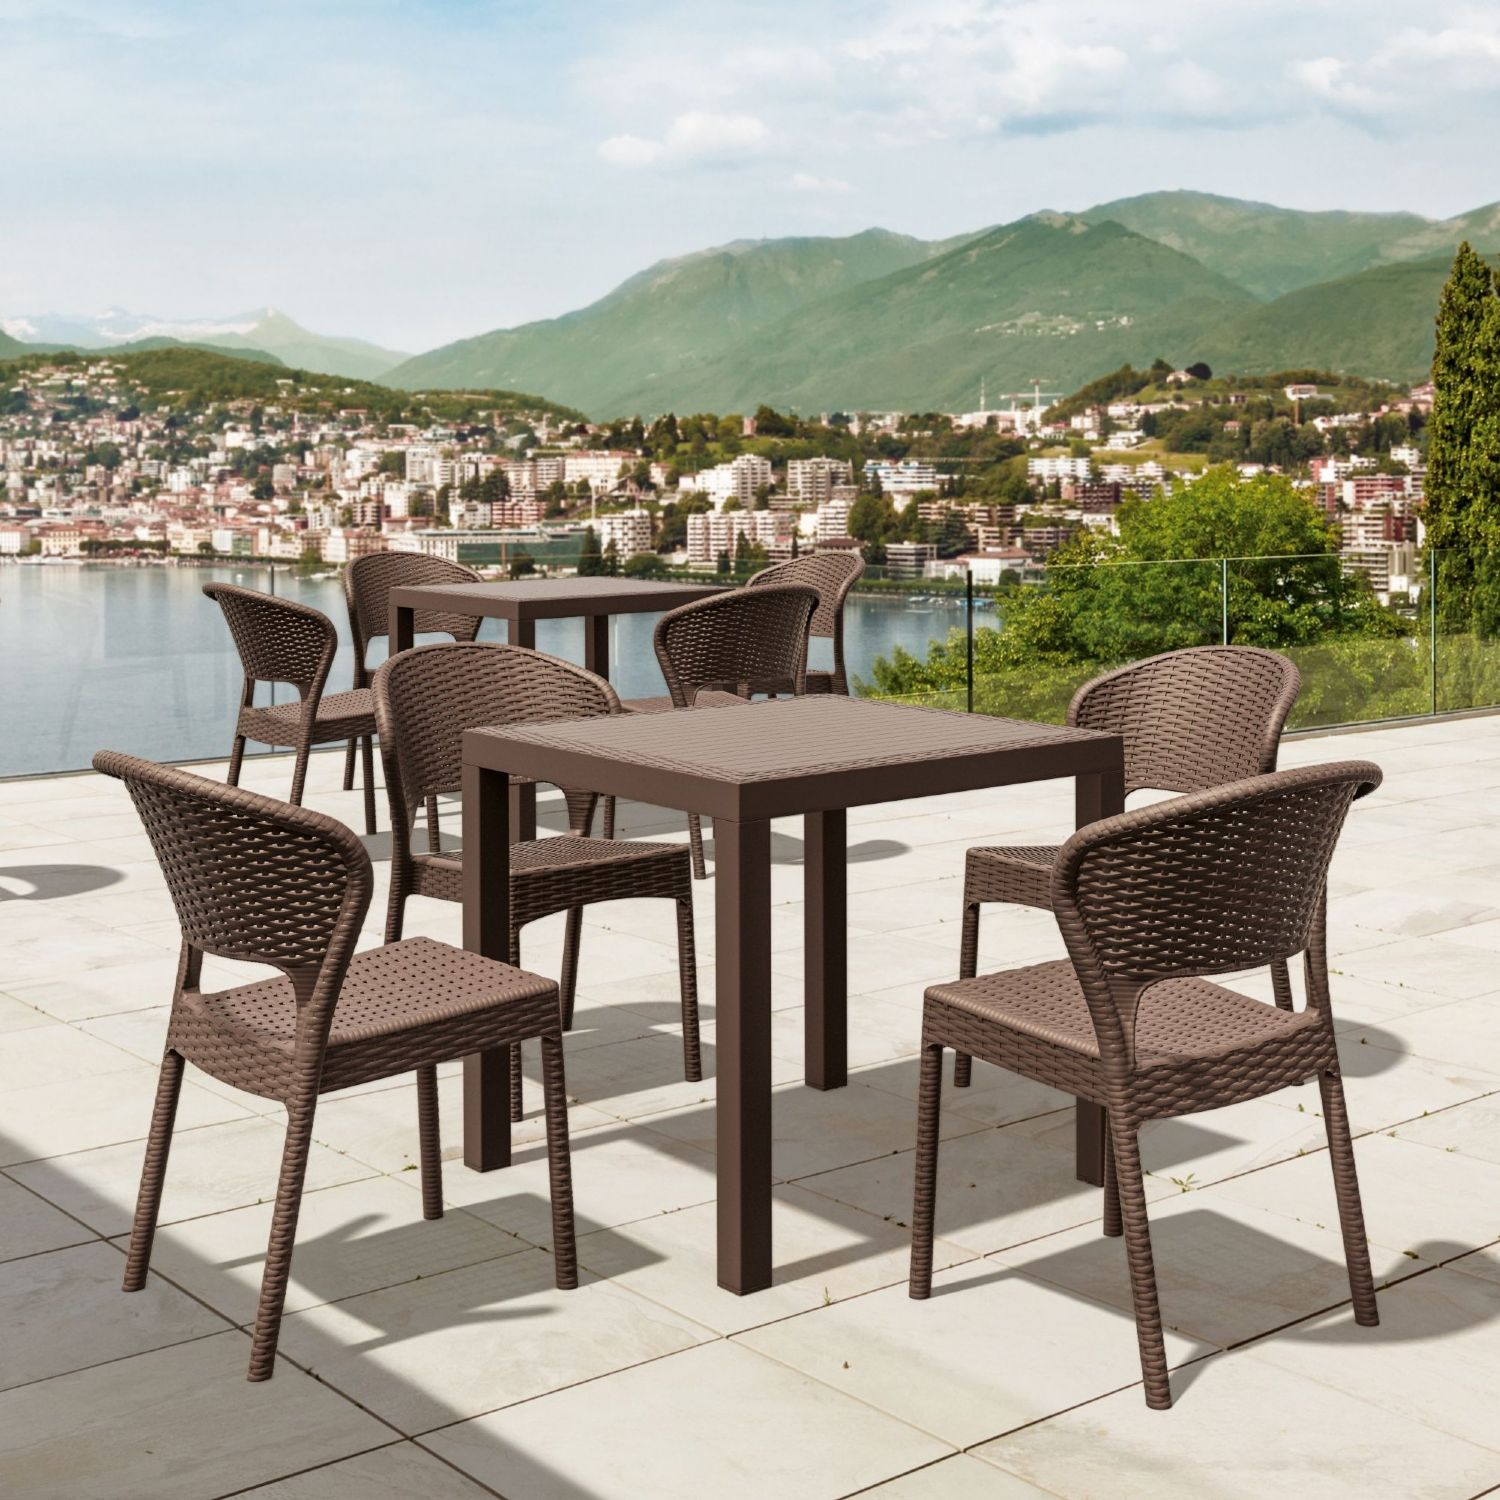 Daytona Wickerlook Square Patio Dining Set 5 Piece Dark Gray ISP8181S-DG - 1